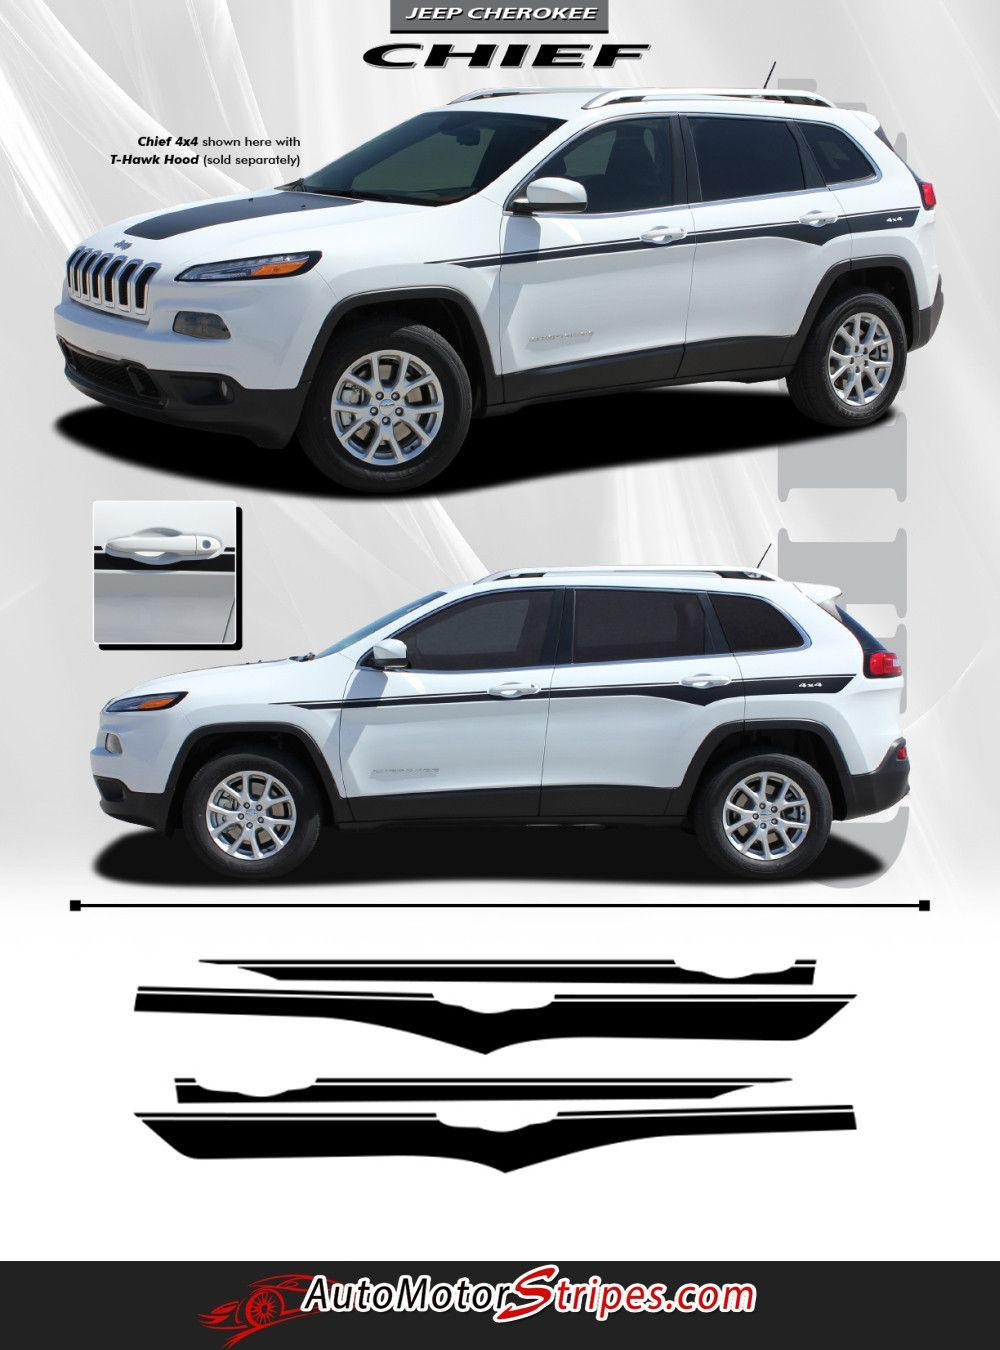 Jeep Cherokee Chief Mid Body Line Accent Vinyl Decal - Vinyl decals for car body